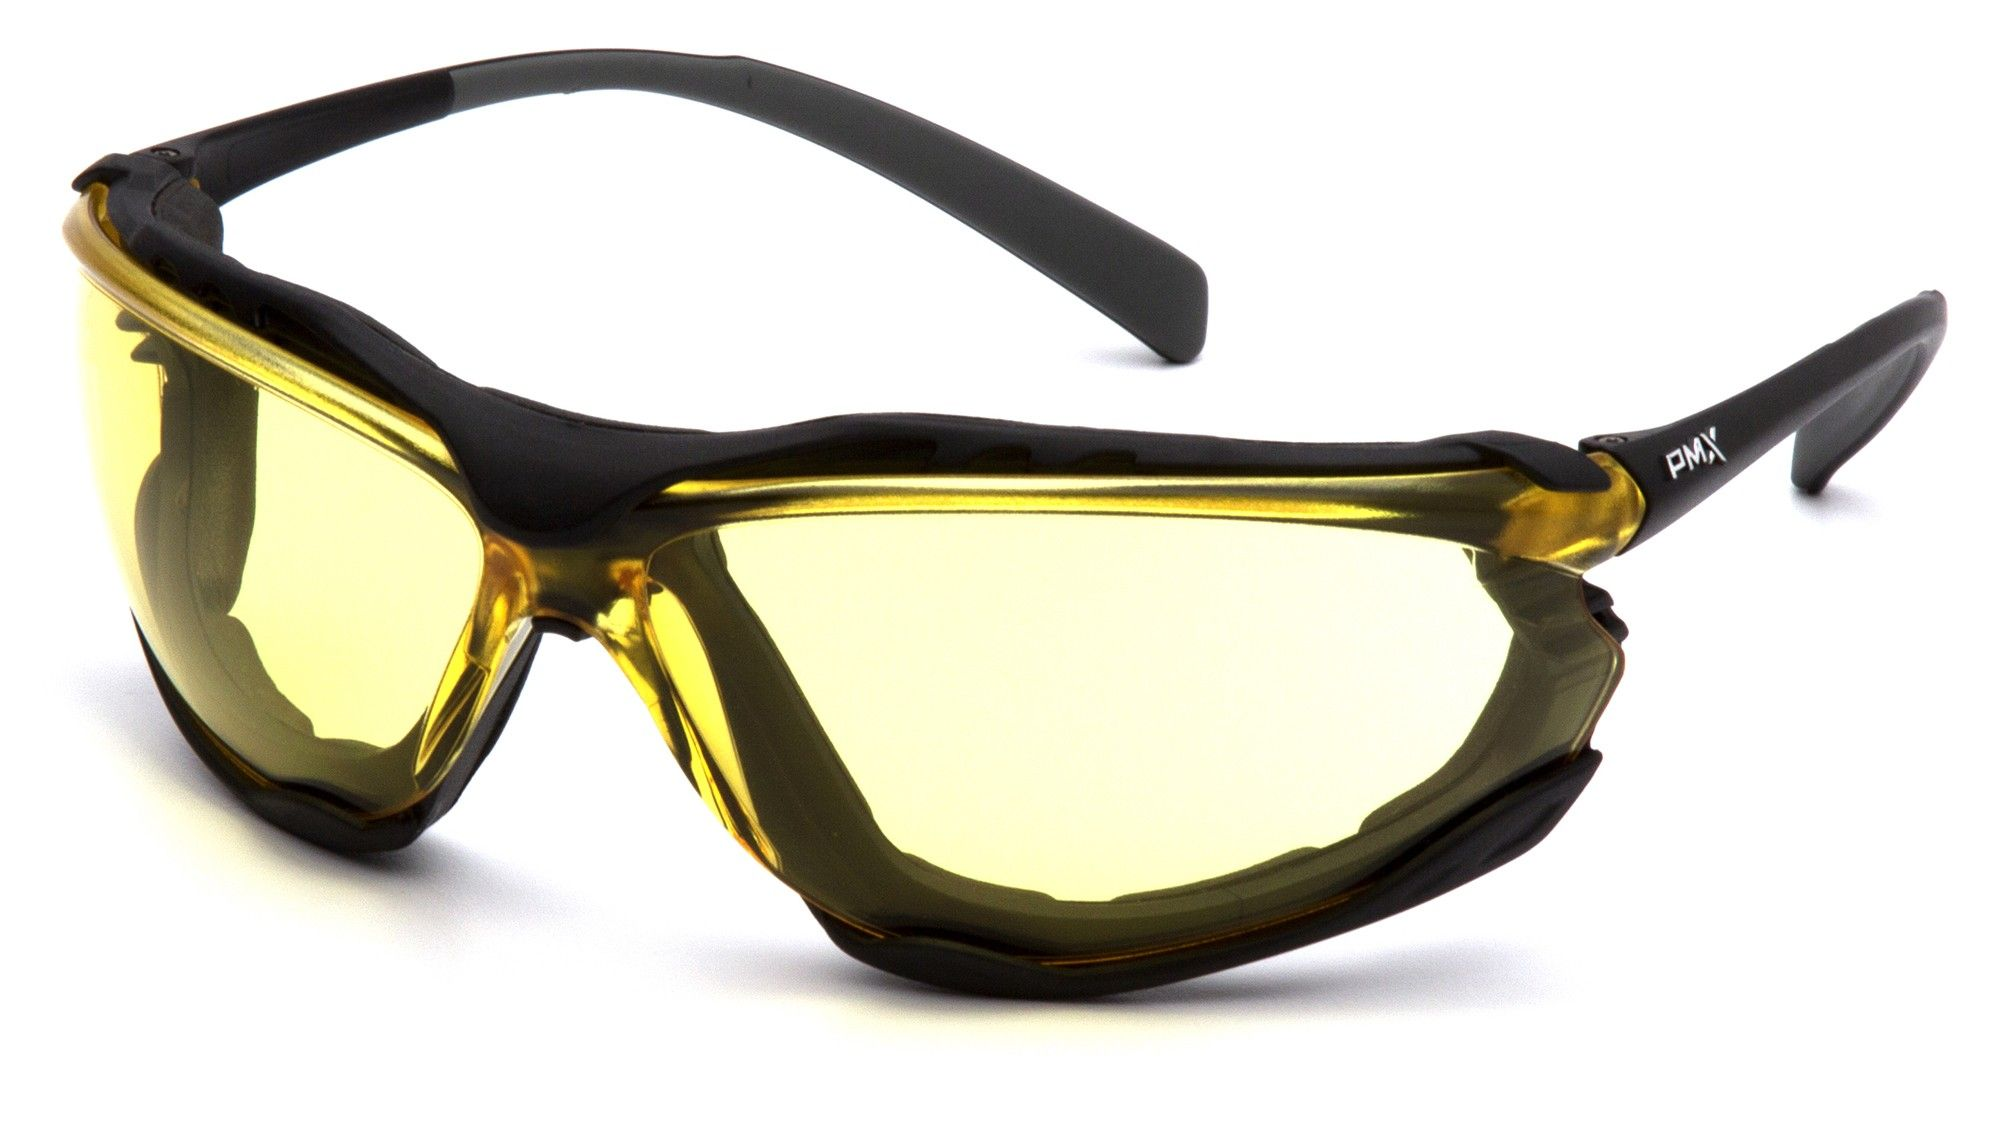 Pyramex SB9330ST Proximity Safety Glasses Black Frame